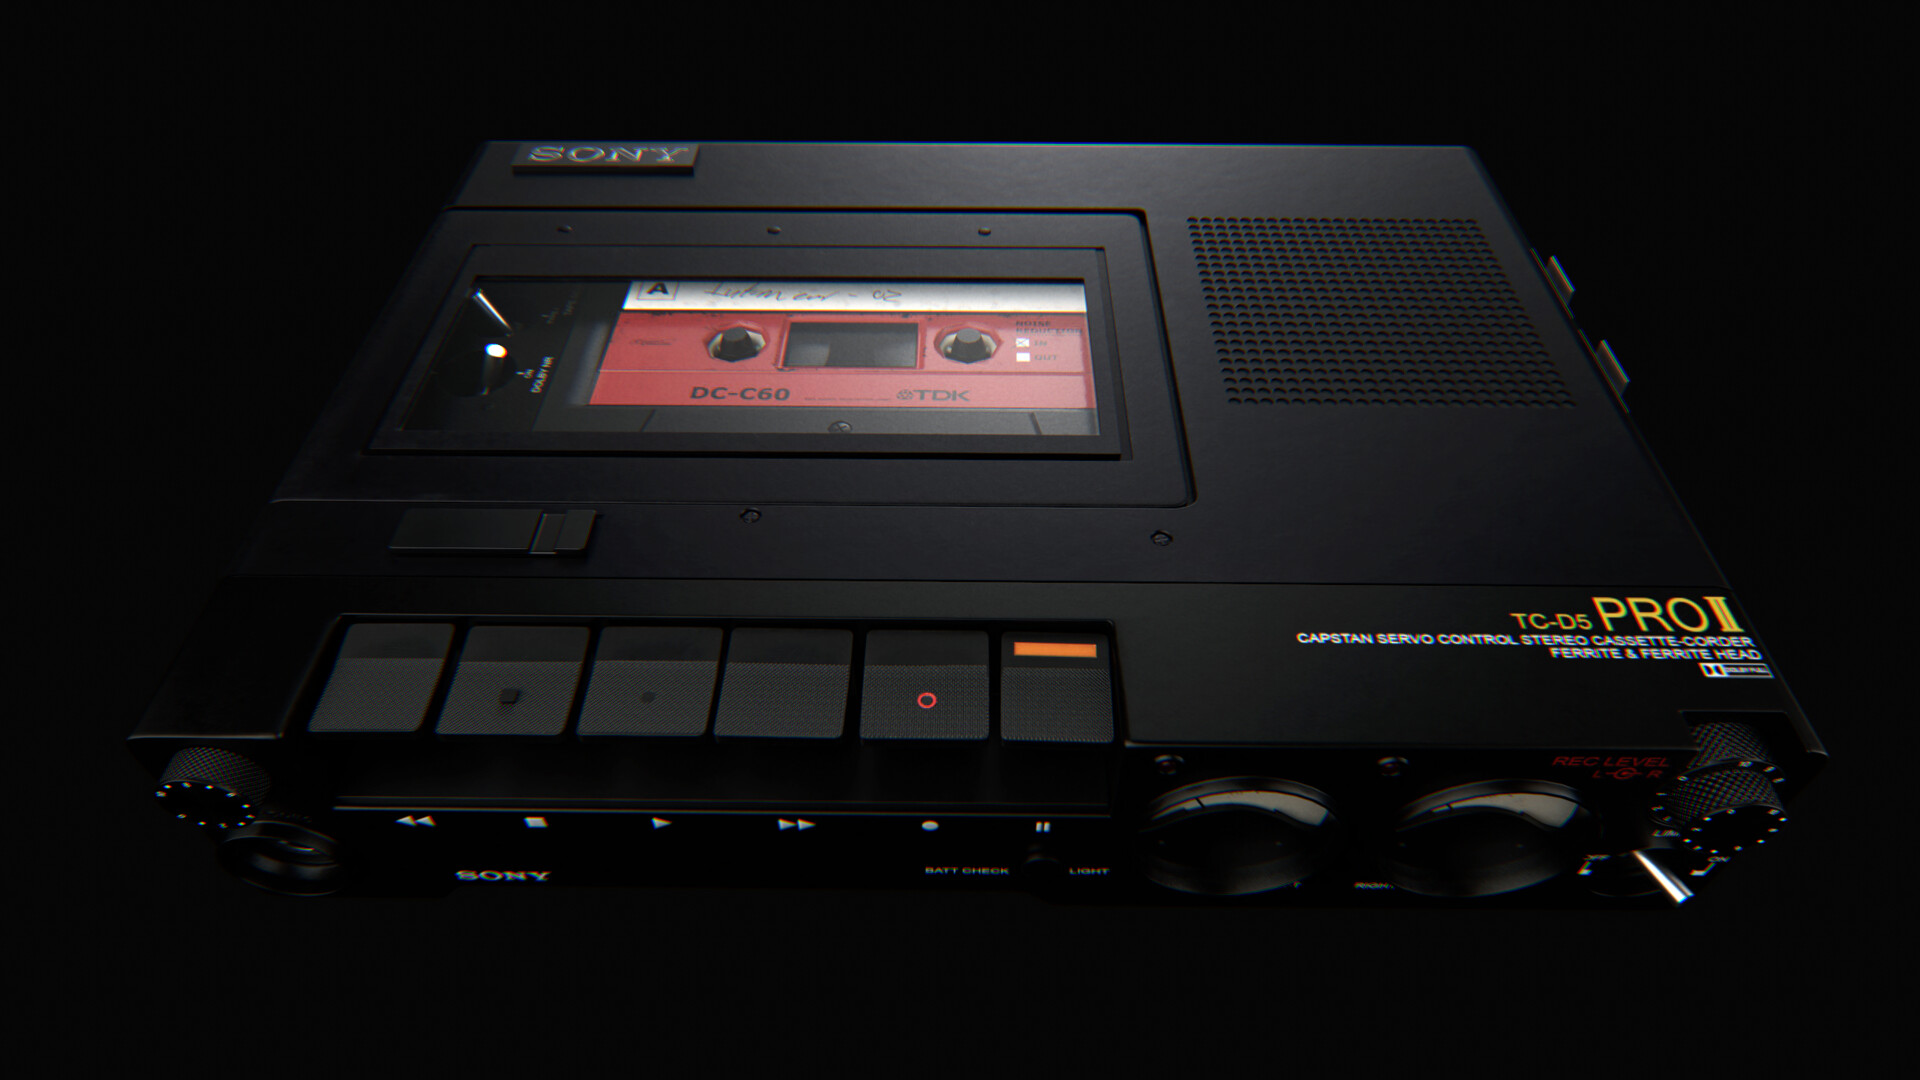 Better view of the cassette tape, created in collaboration with CG trader.com. Originally it was designed for use with procedural textures and required extensive modification and retexturing to get the final look.